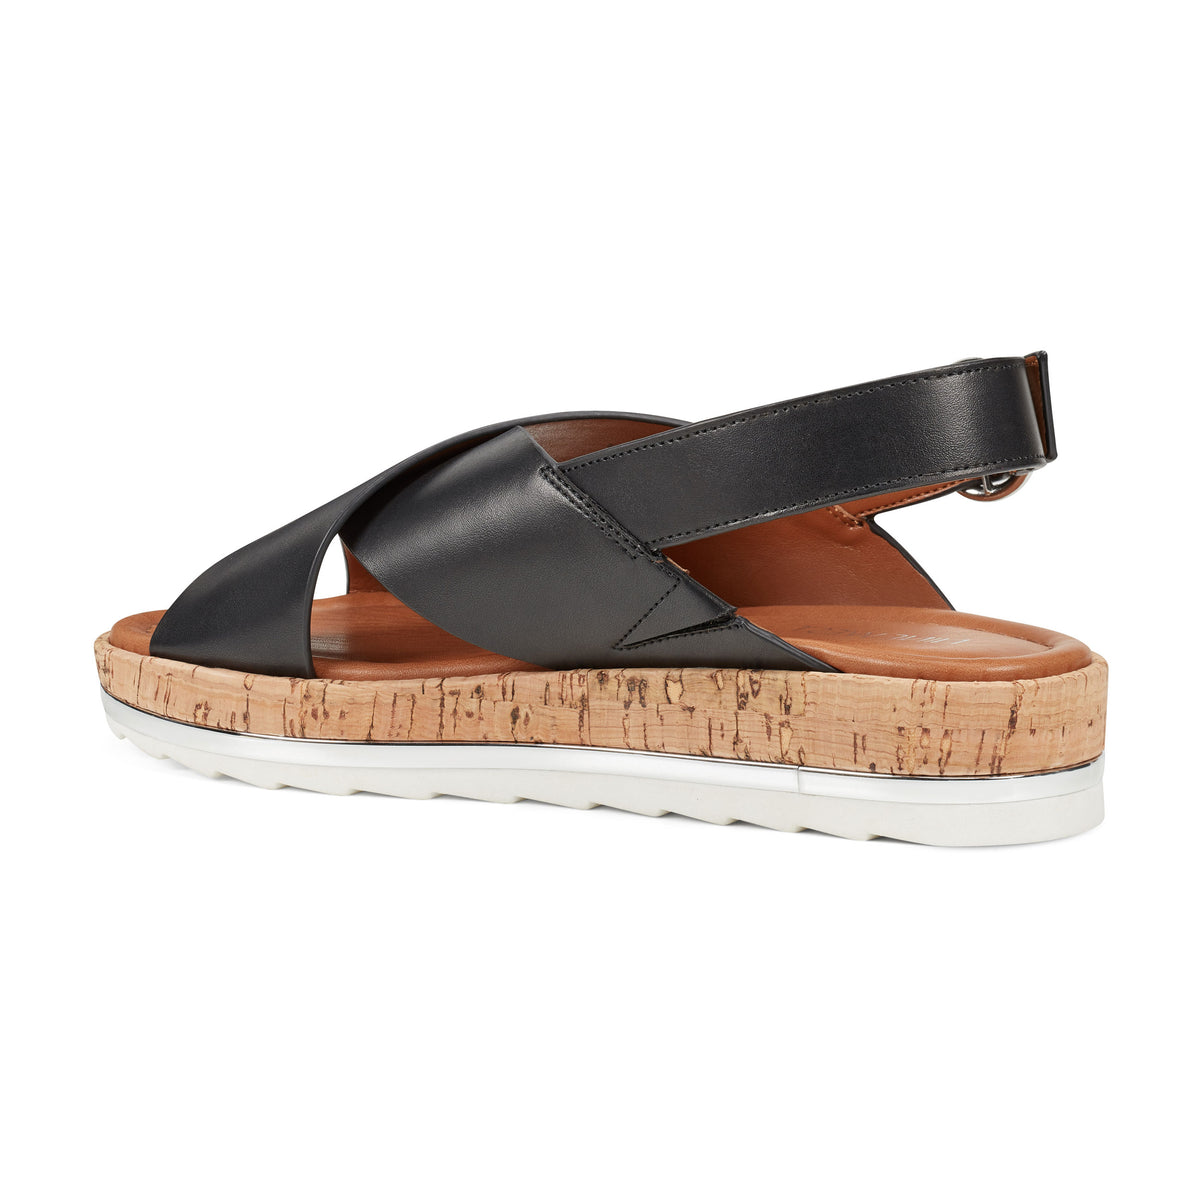 angie-flat-sandals-in-black